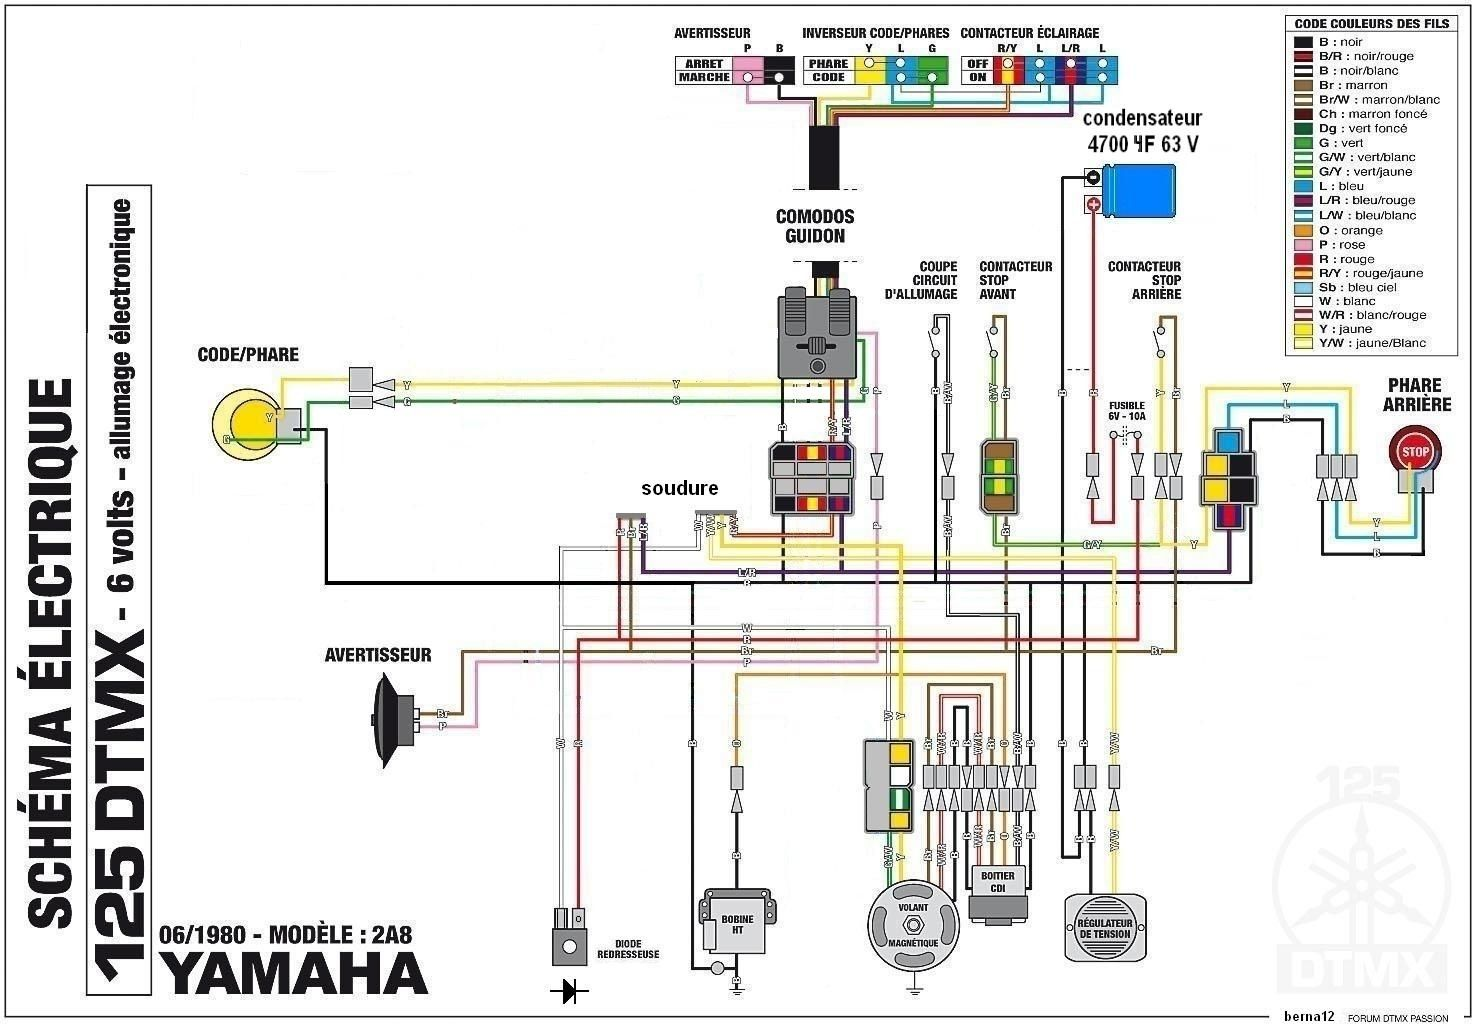 Circuit Simplifie Electronique Dtmx as well Orig also Post furthermore Yamaha Hp Hp Outboard Won E T Start together with Ja. on yamaha dt 50 wiring diagram